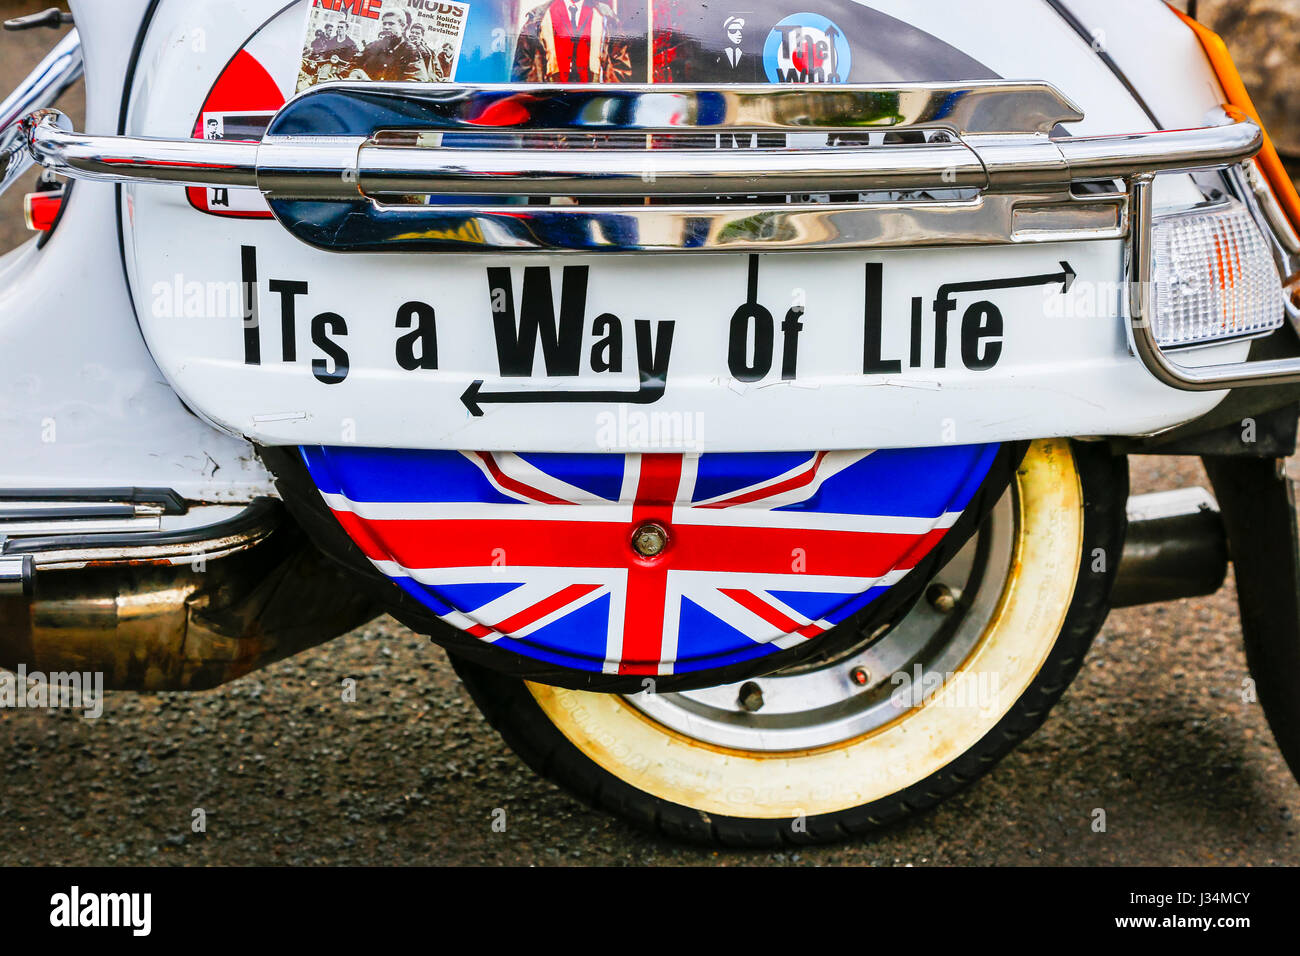 MOD decorated scooter with Union Jack and stickers promoting the Mod way of life, Scotland, UK - Stock Image